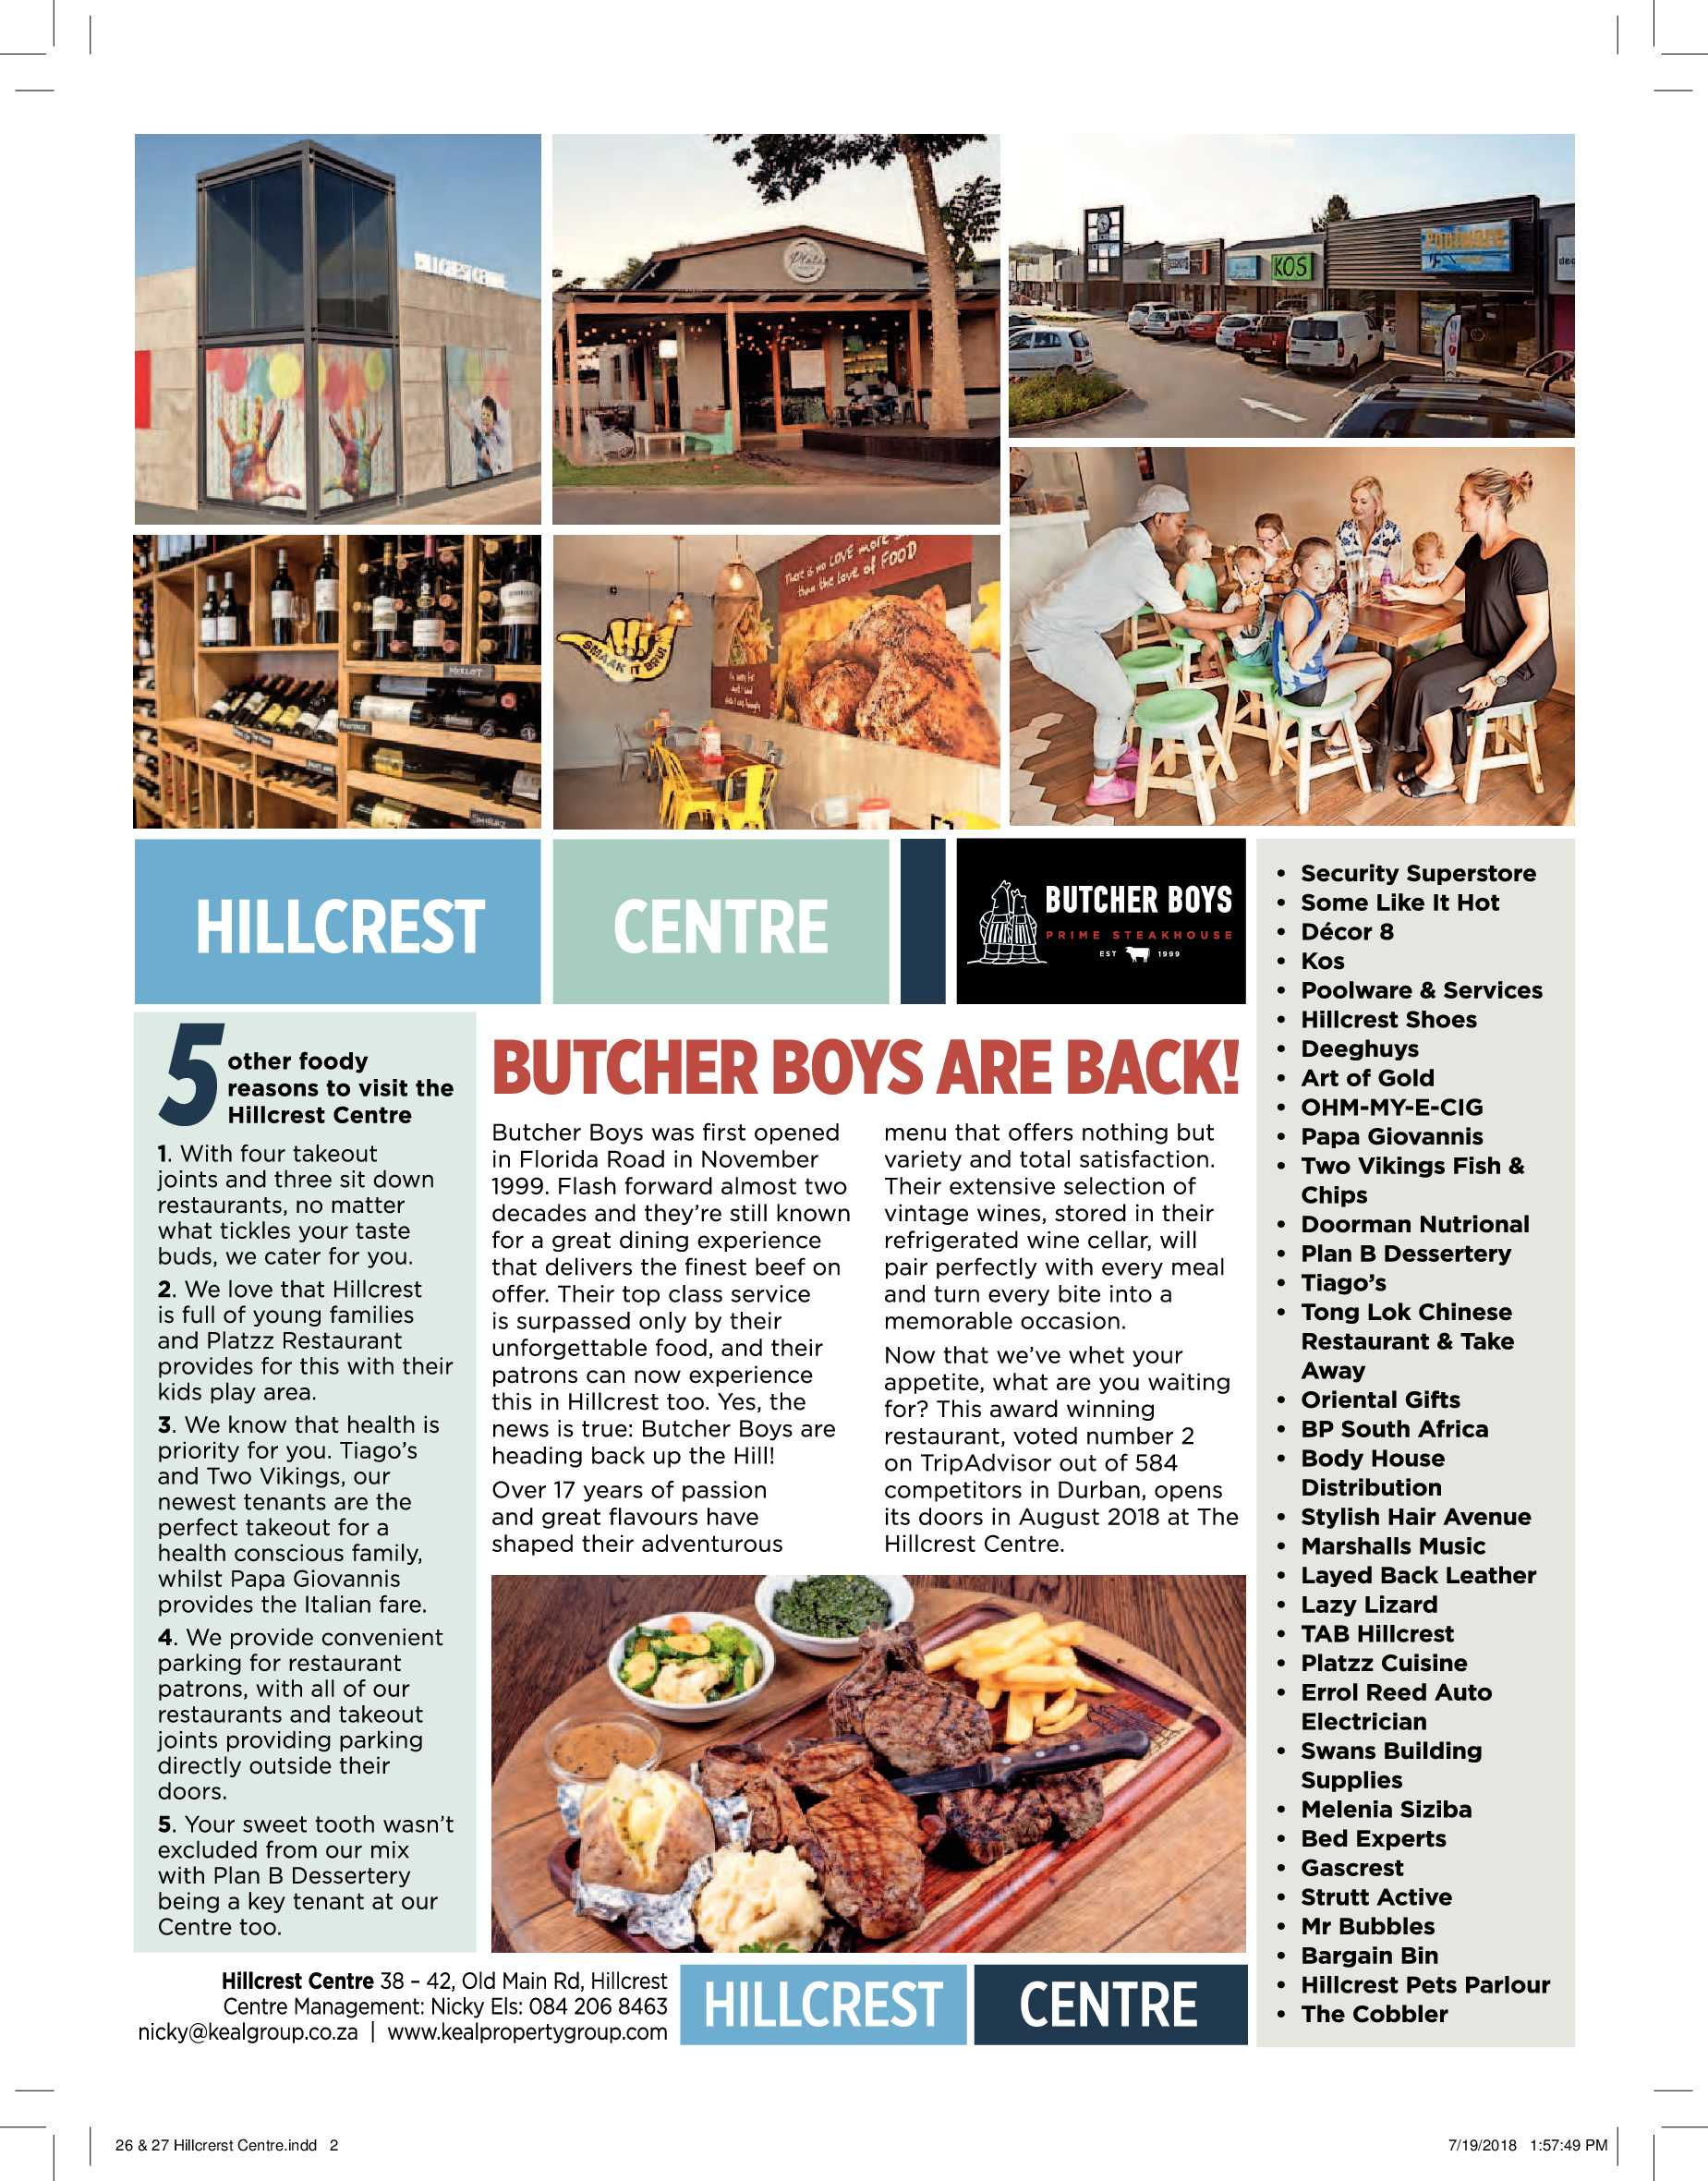 get-magazine-durban-august-2018-epapers-page-28